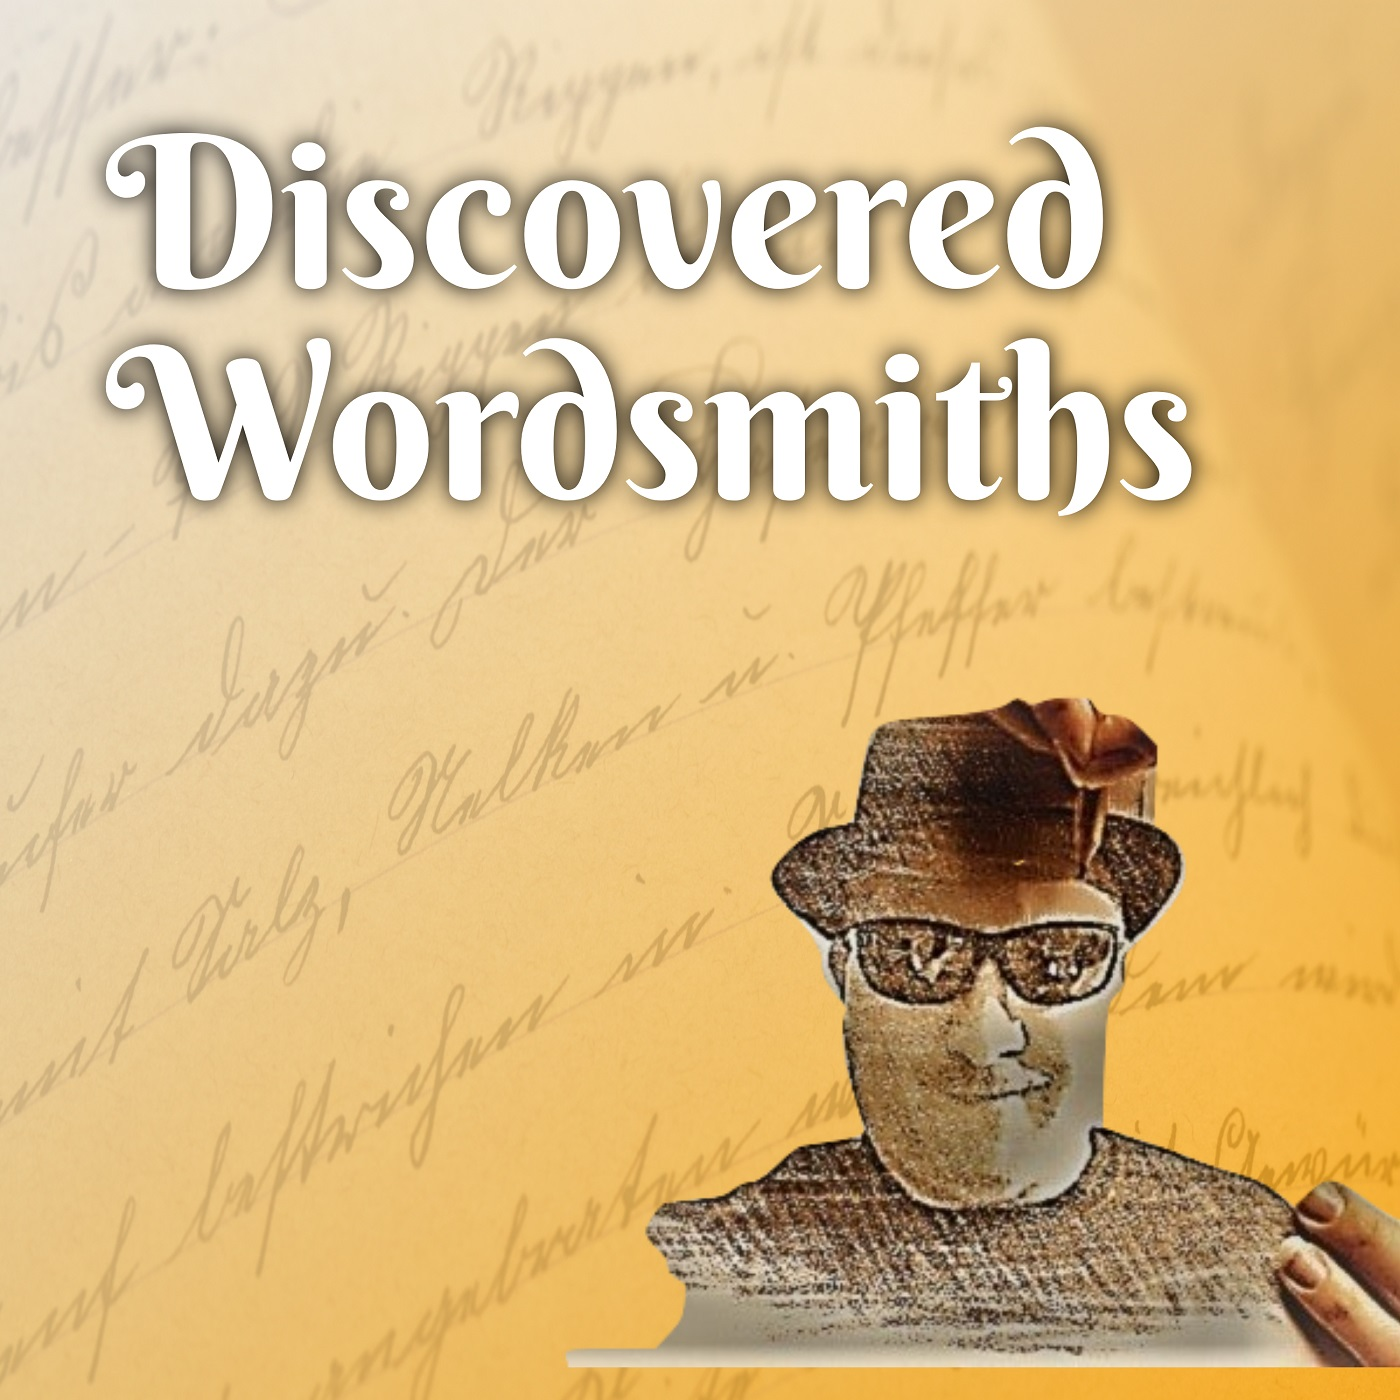 Discovered Wordsmiths